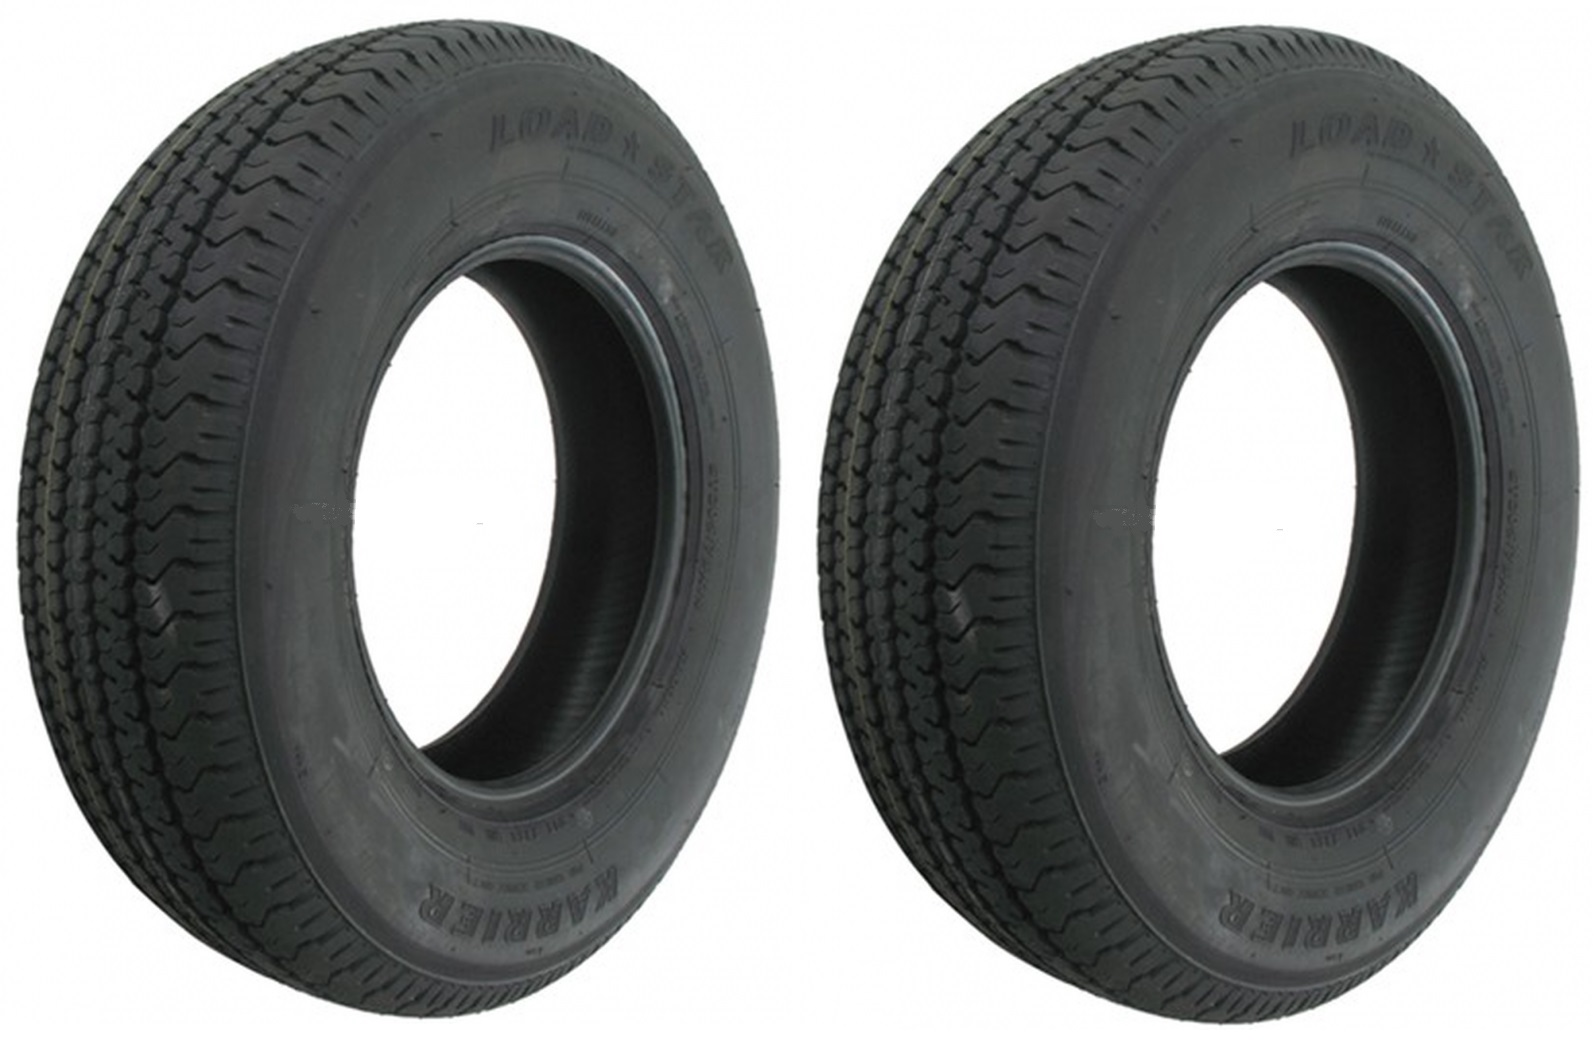 2 Pack Radial Trailer Tires St205 75r14 St 205 75 R 14 In Load